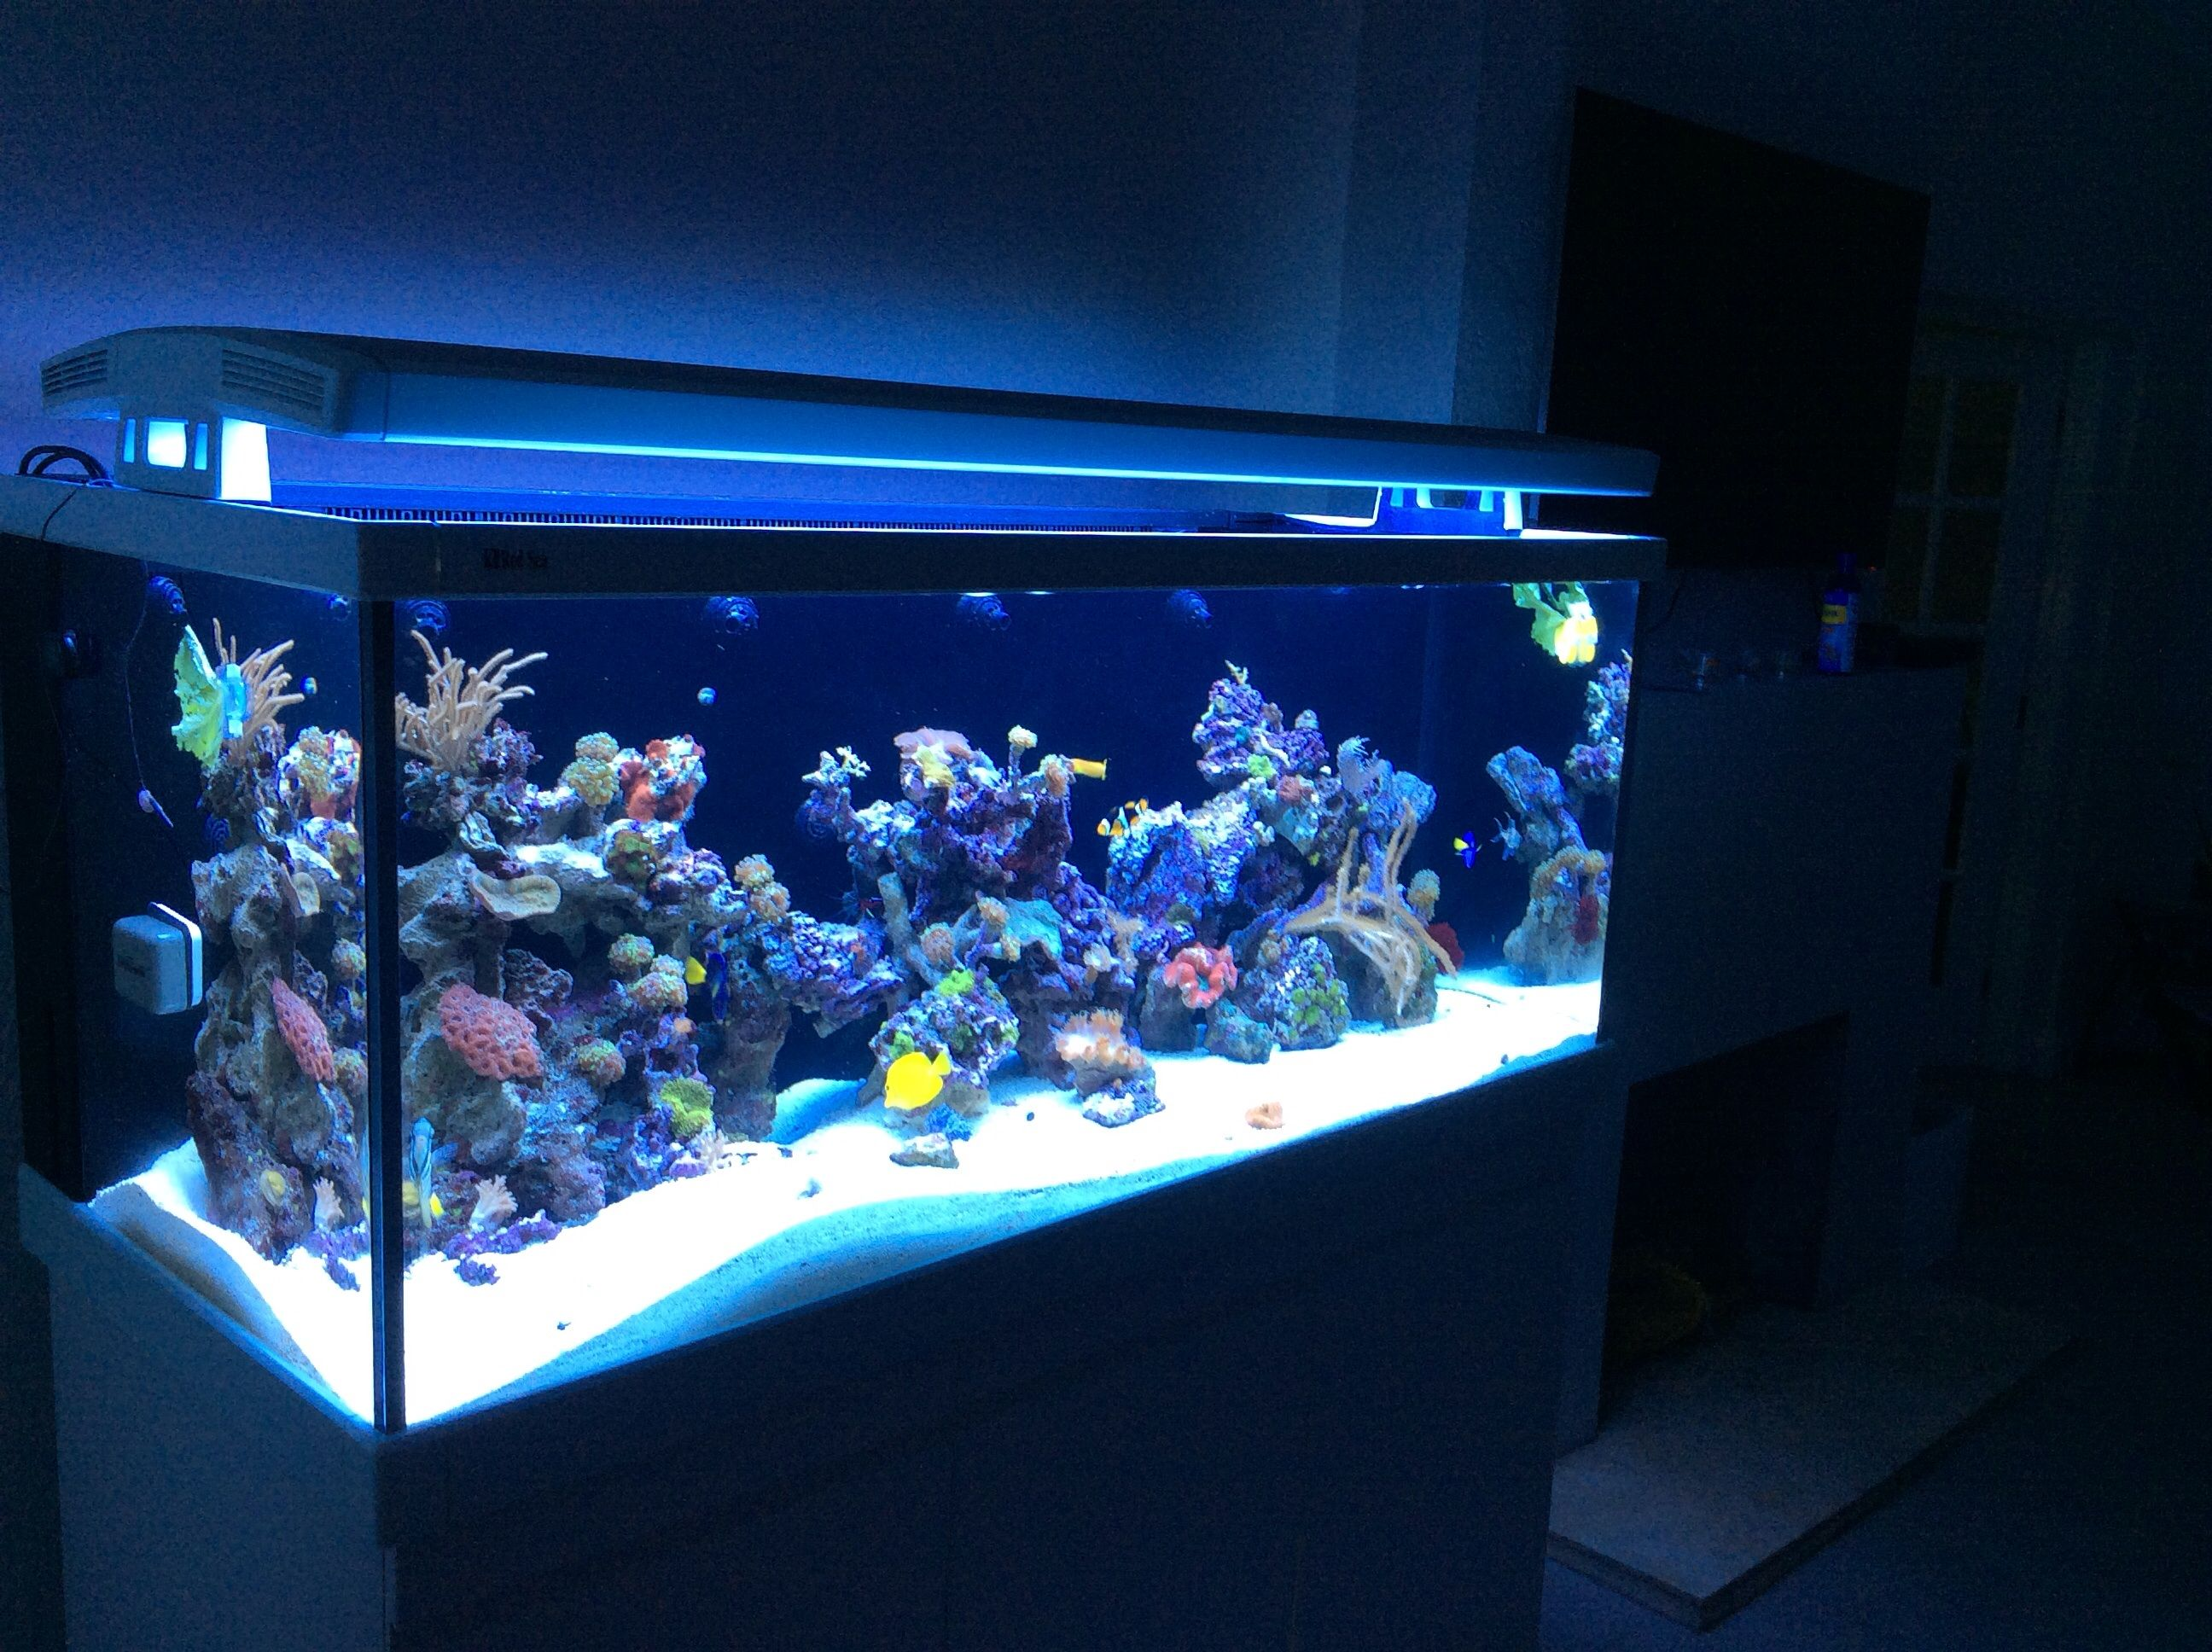 red sea max s 650 purchased from aquarium butler scaped. Black Bedroom Furniture Sets. Home Design Ideas